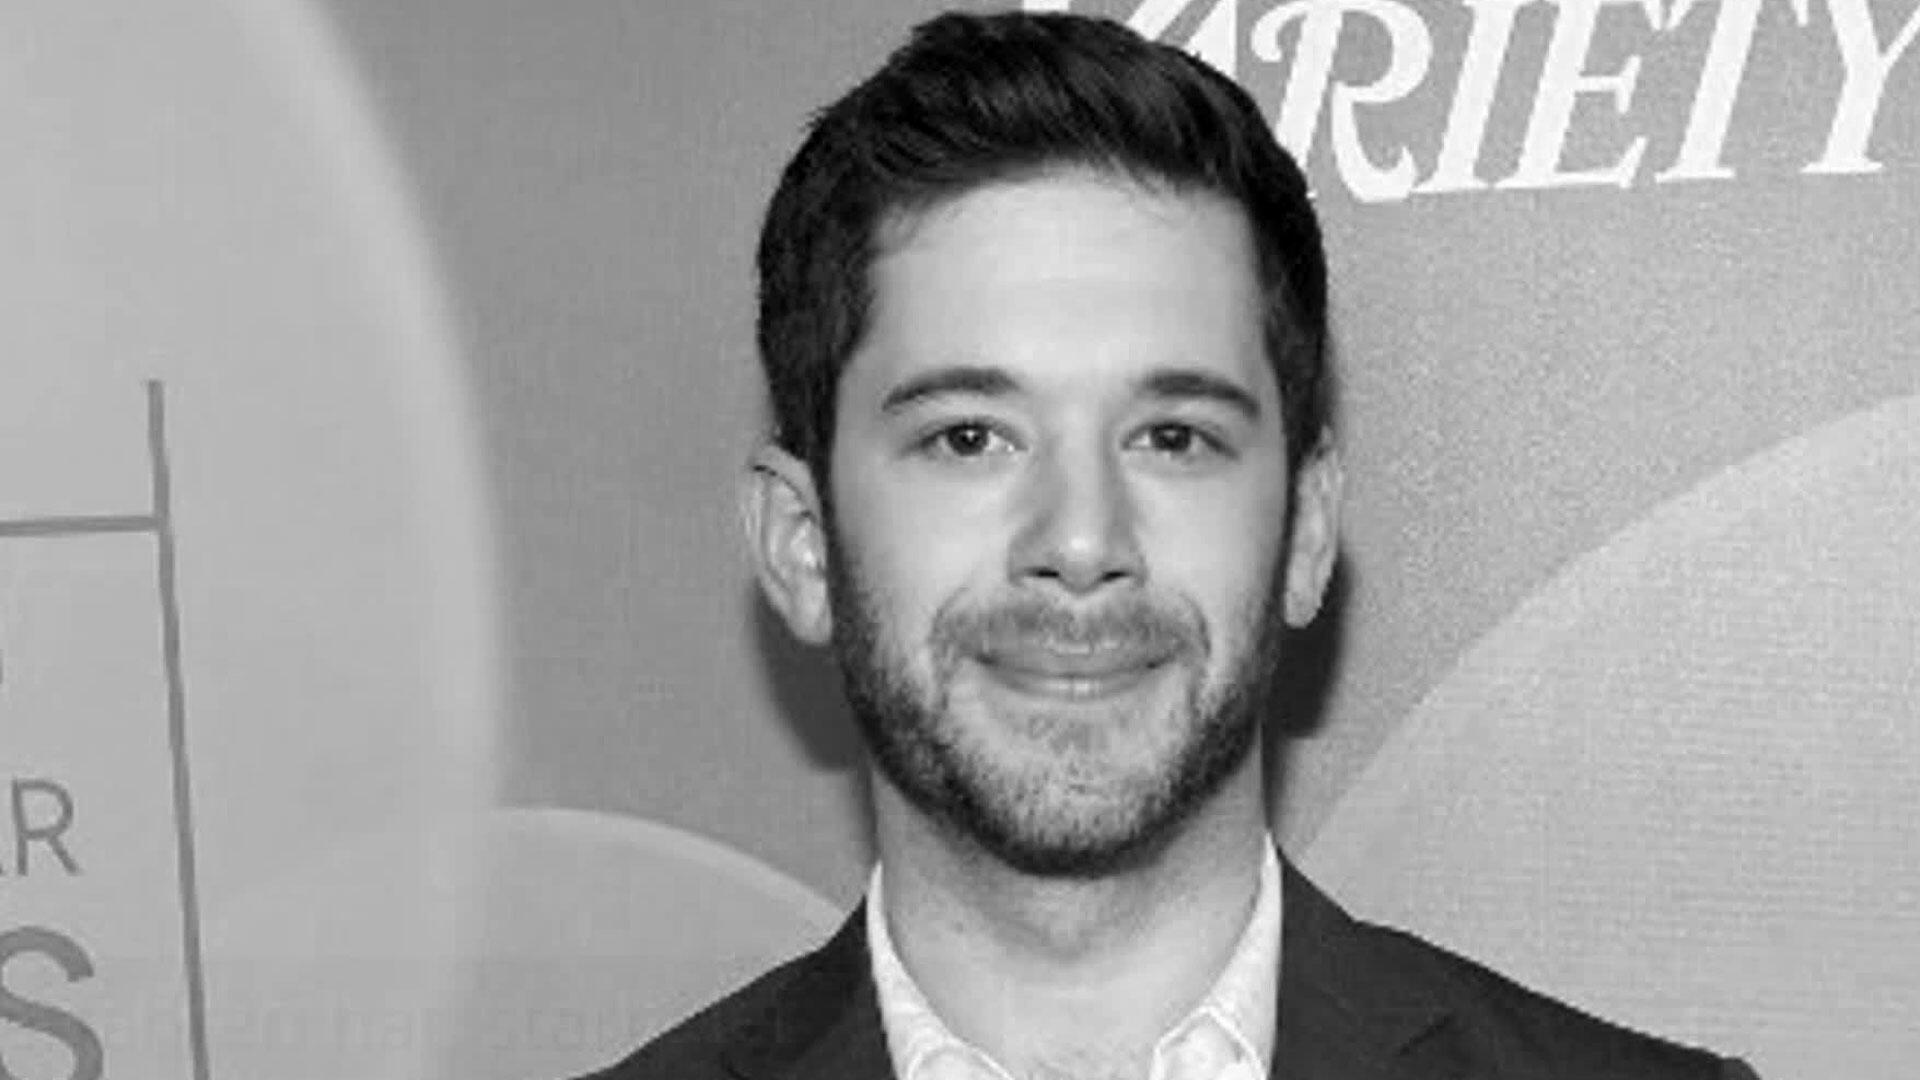 Colin Kroll Ethnicity, Race, and Nationality